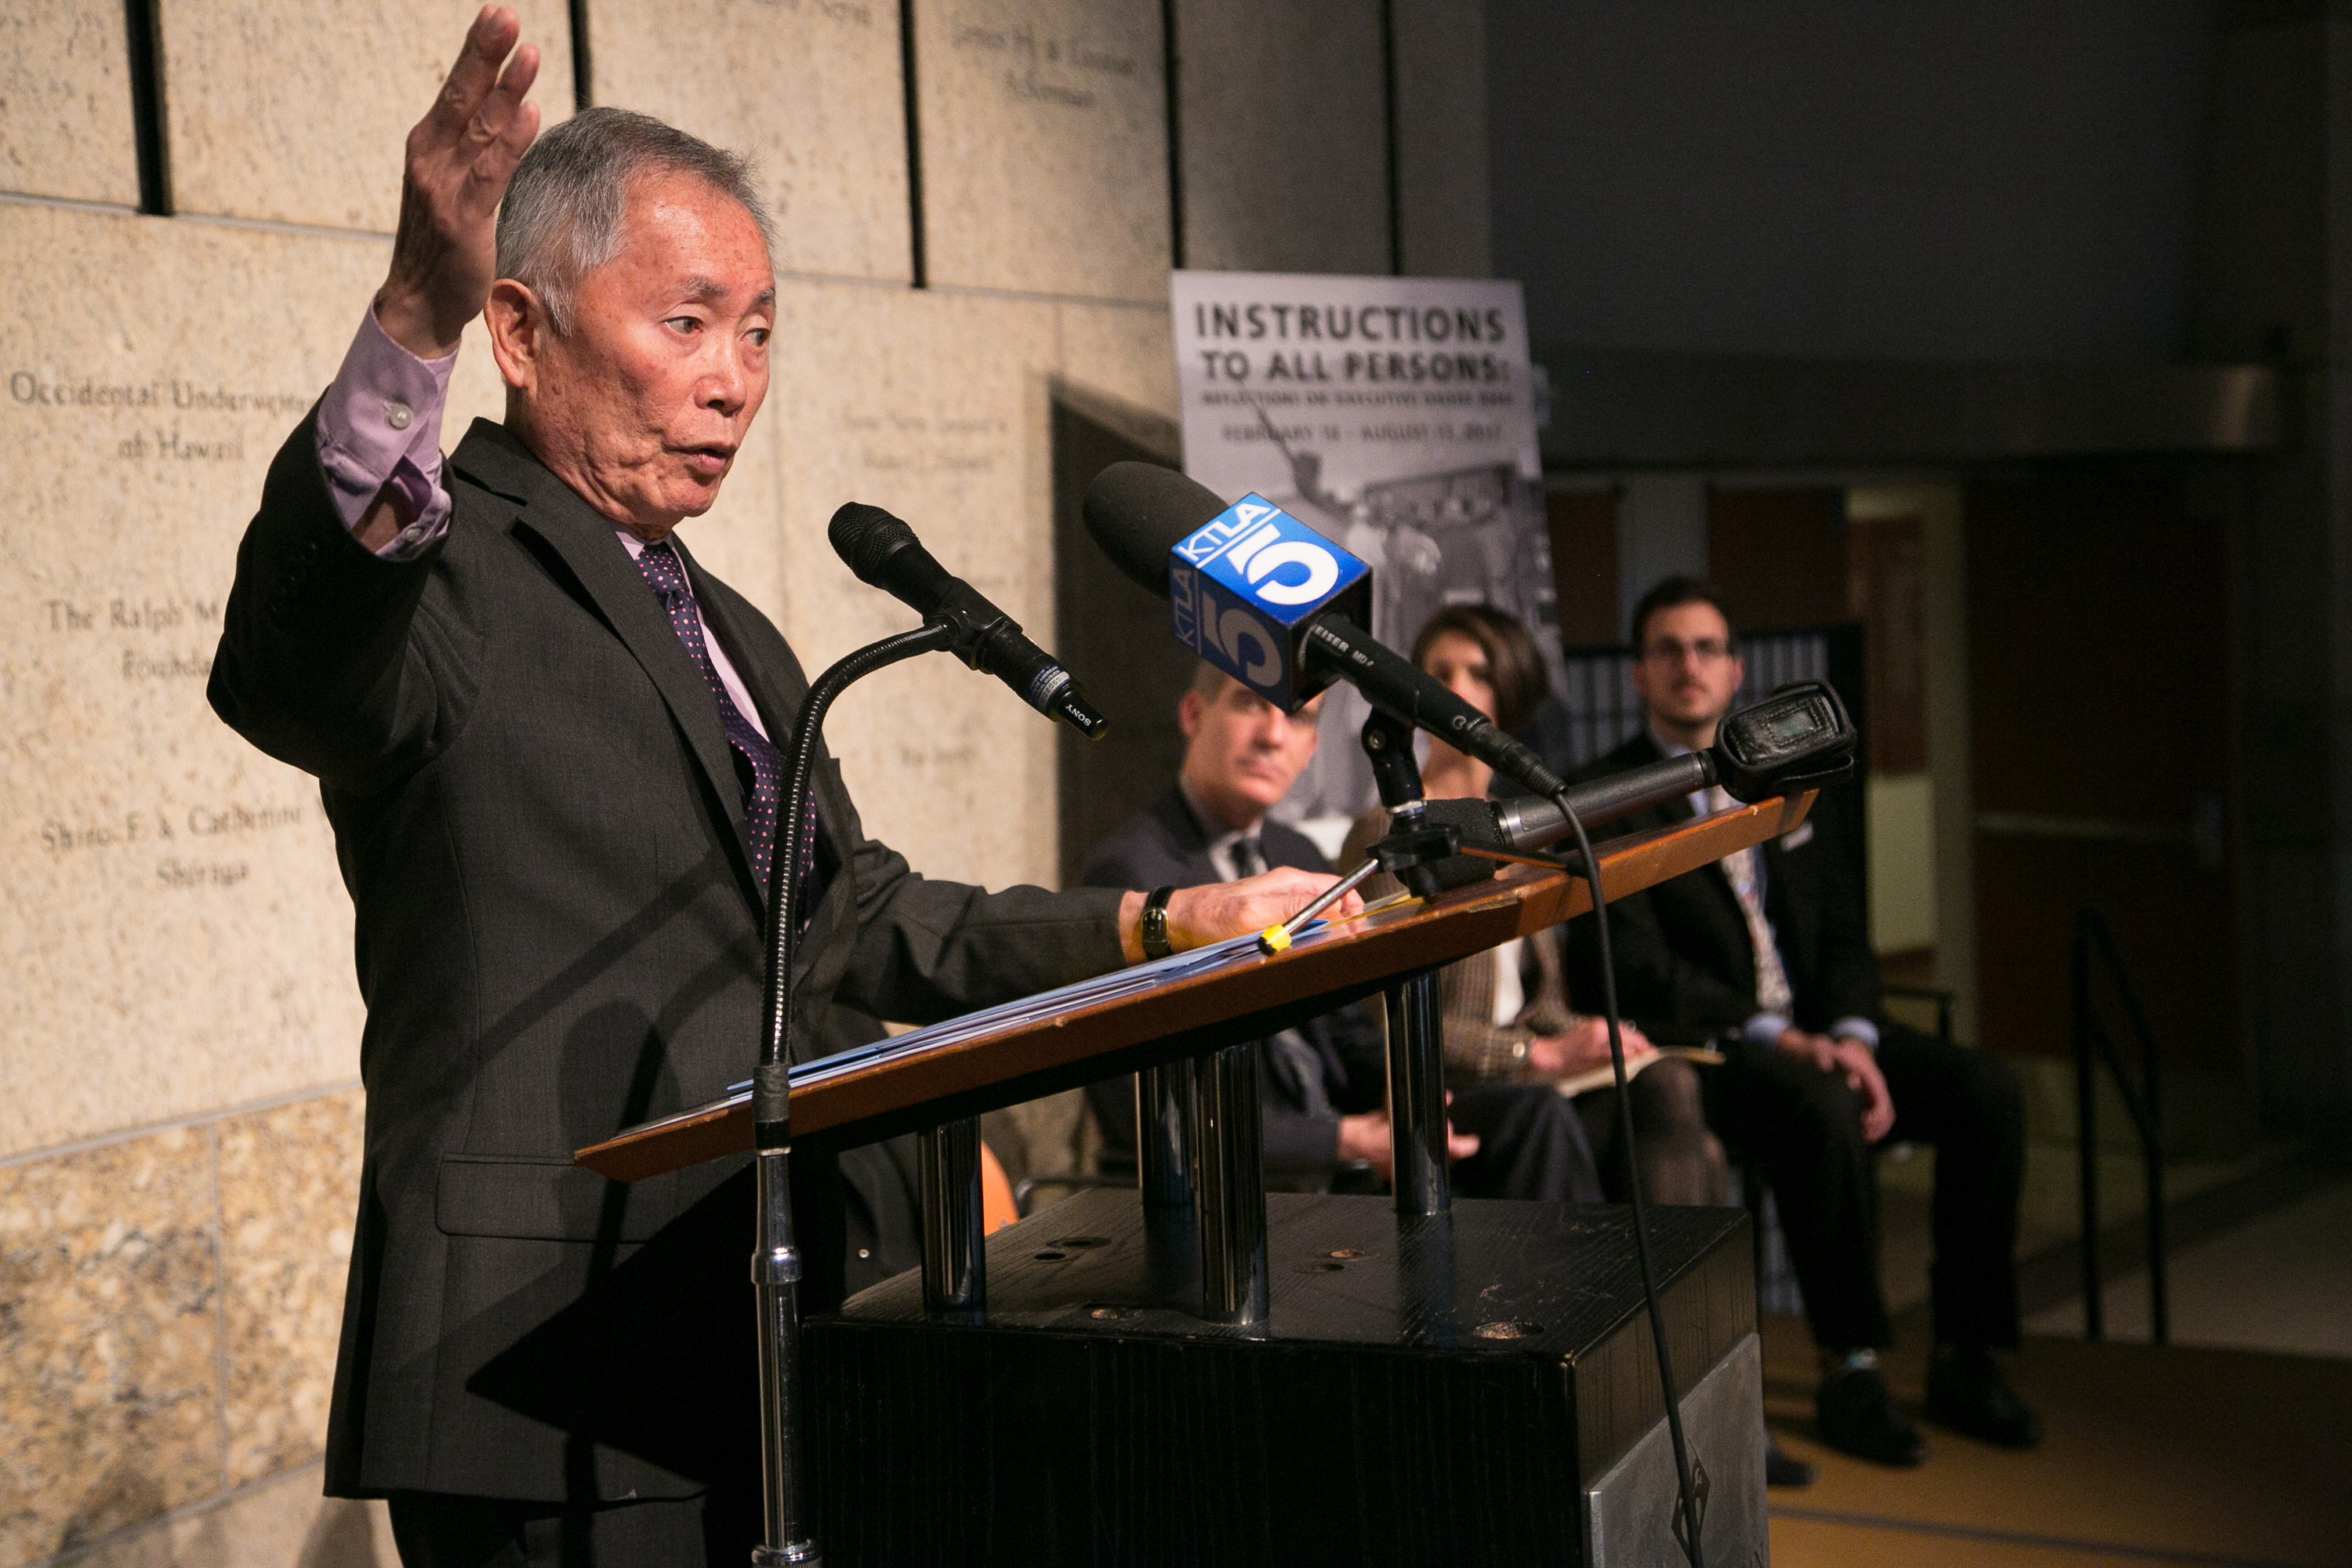 George Takei attends the press conference for The Japanese American National Museum's exhibition  Instructions To All Persons: Reflections On Executive Order 9066  at Japanese American National Museum on February 17, 2017, in Los Angeles, California.